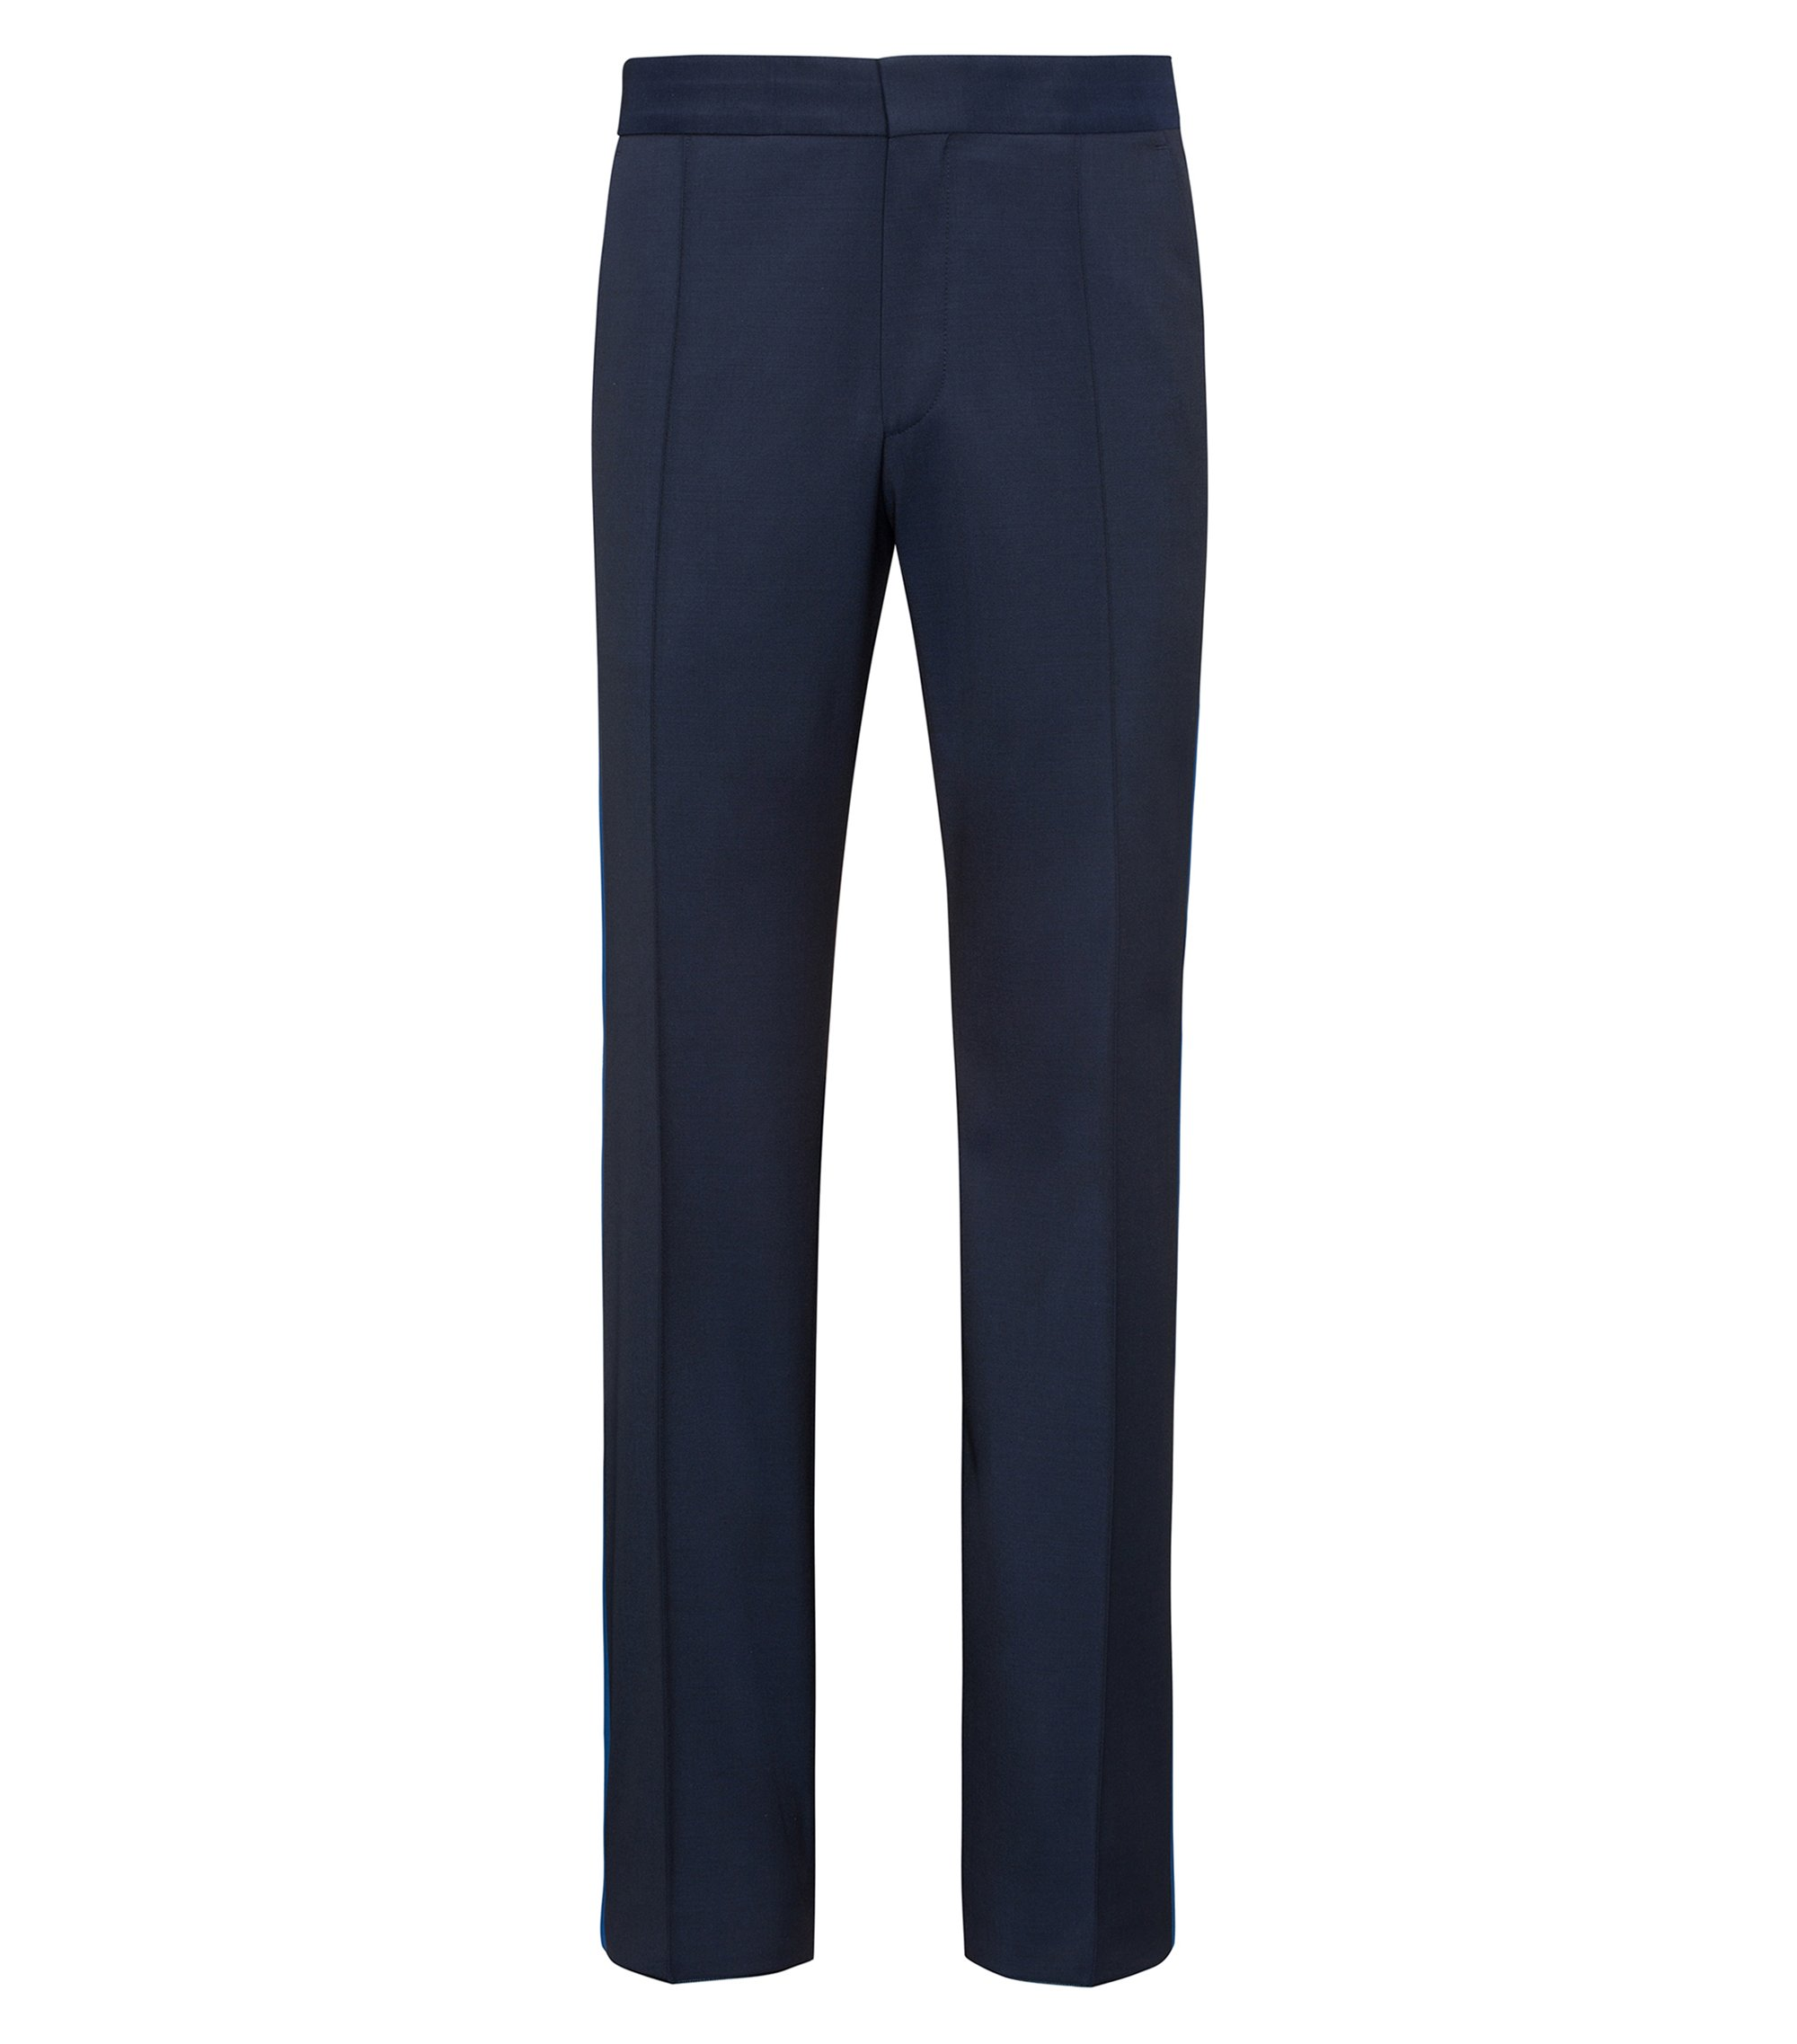 Virgin Wool Dress Pant, Oversized Fit | Fedo , Dark Blue